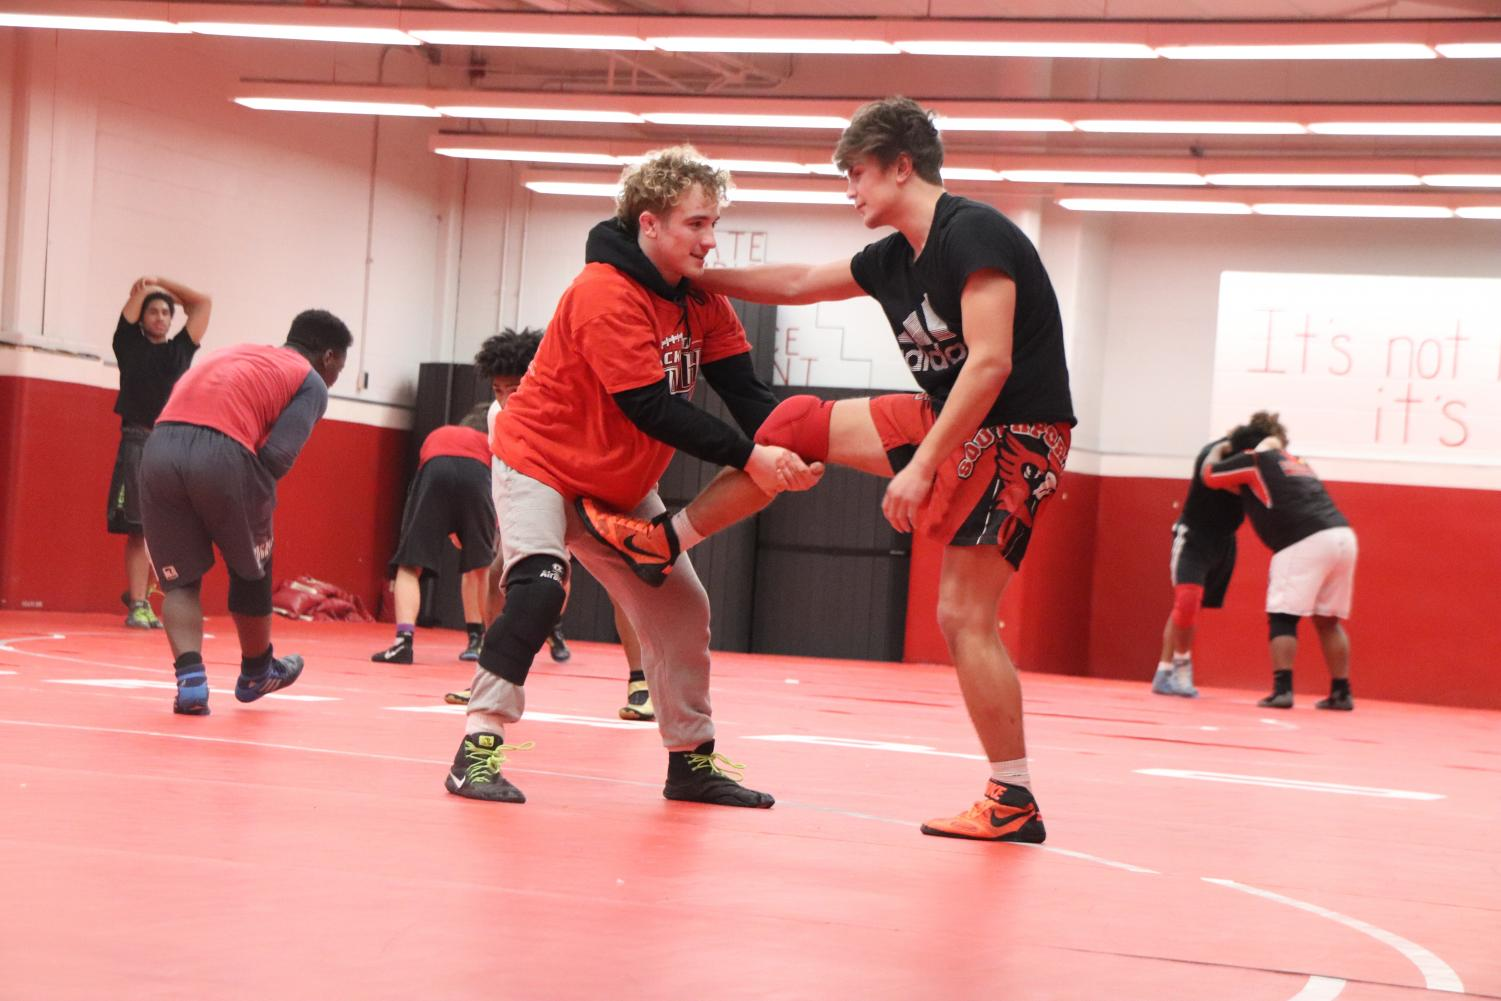 Luke Goodwin and senior Josh Moore practice with each other on Jan. 30. Goodwin won first place in conference on Jan. 18.